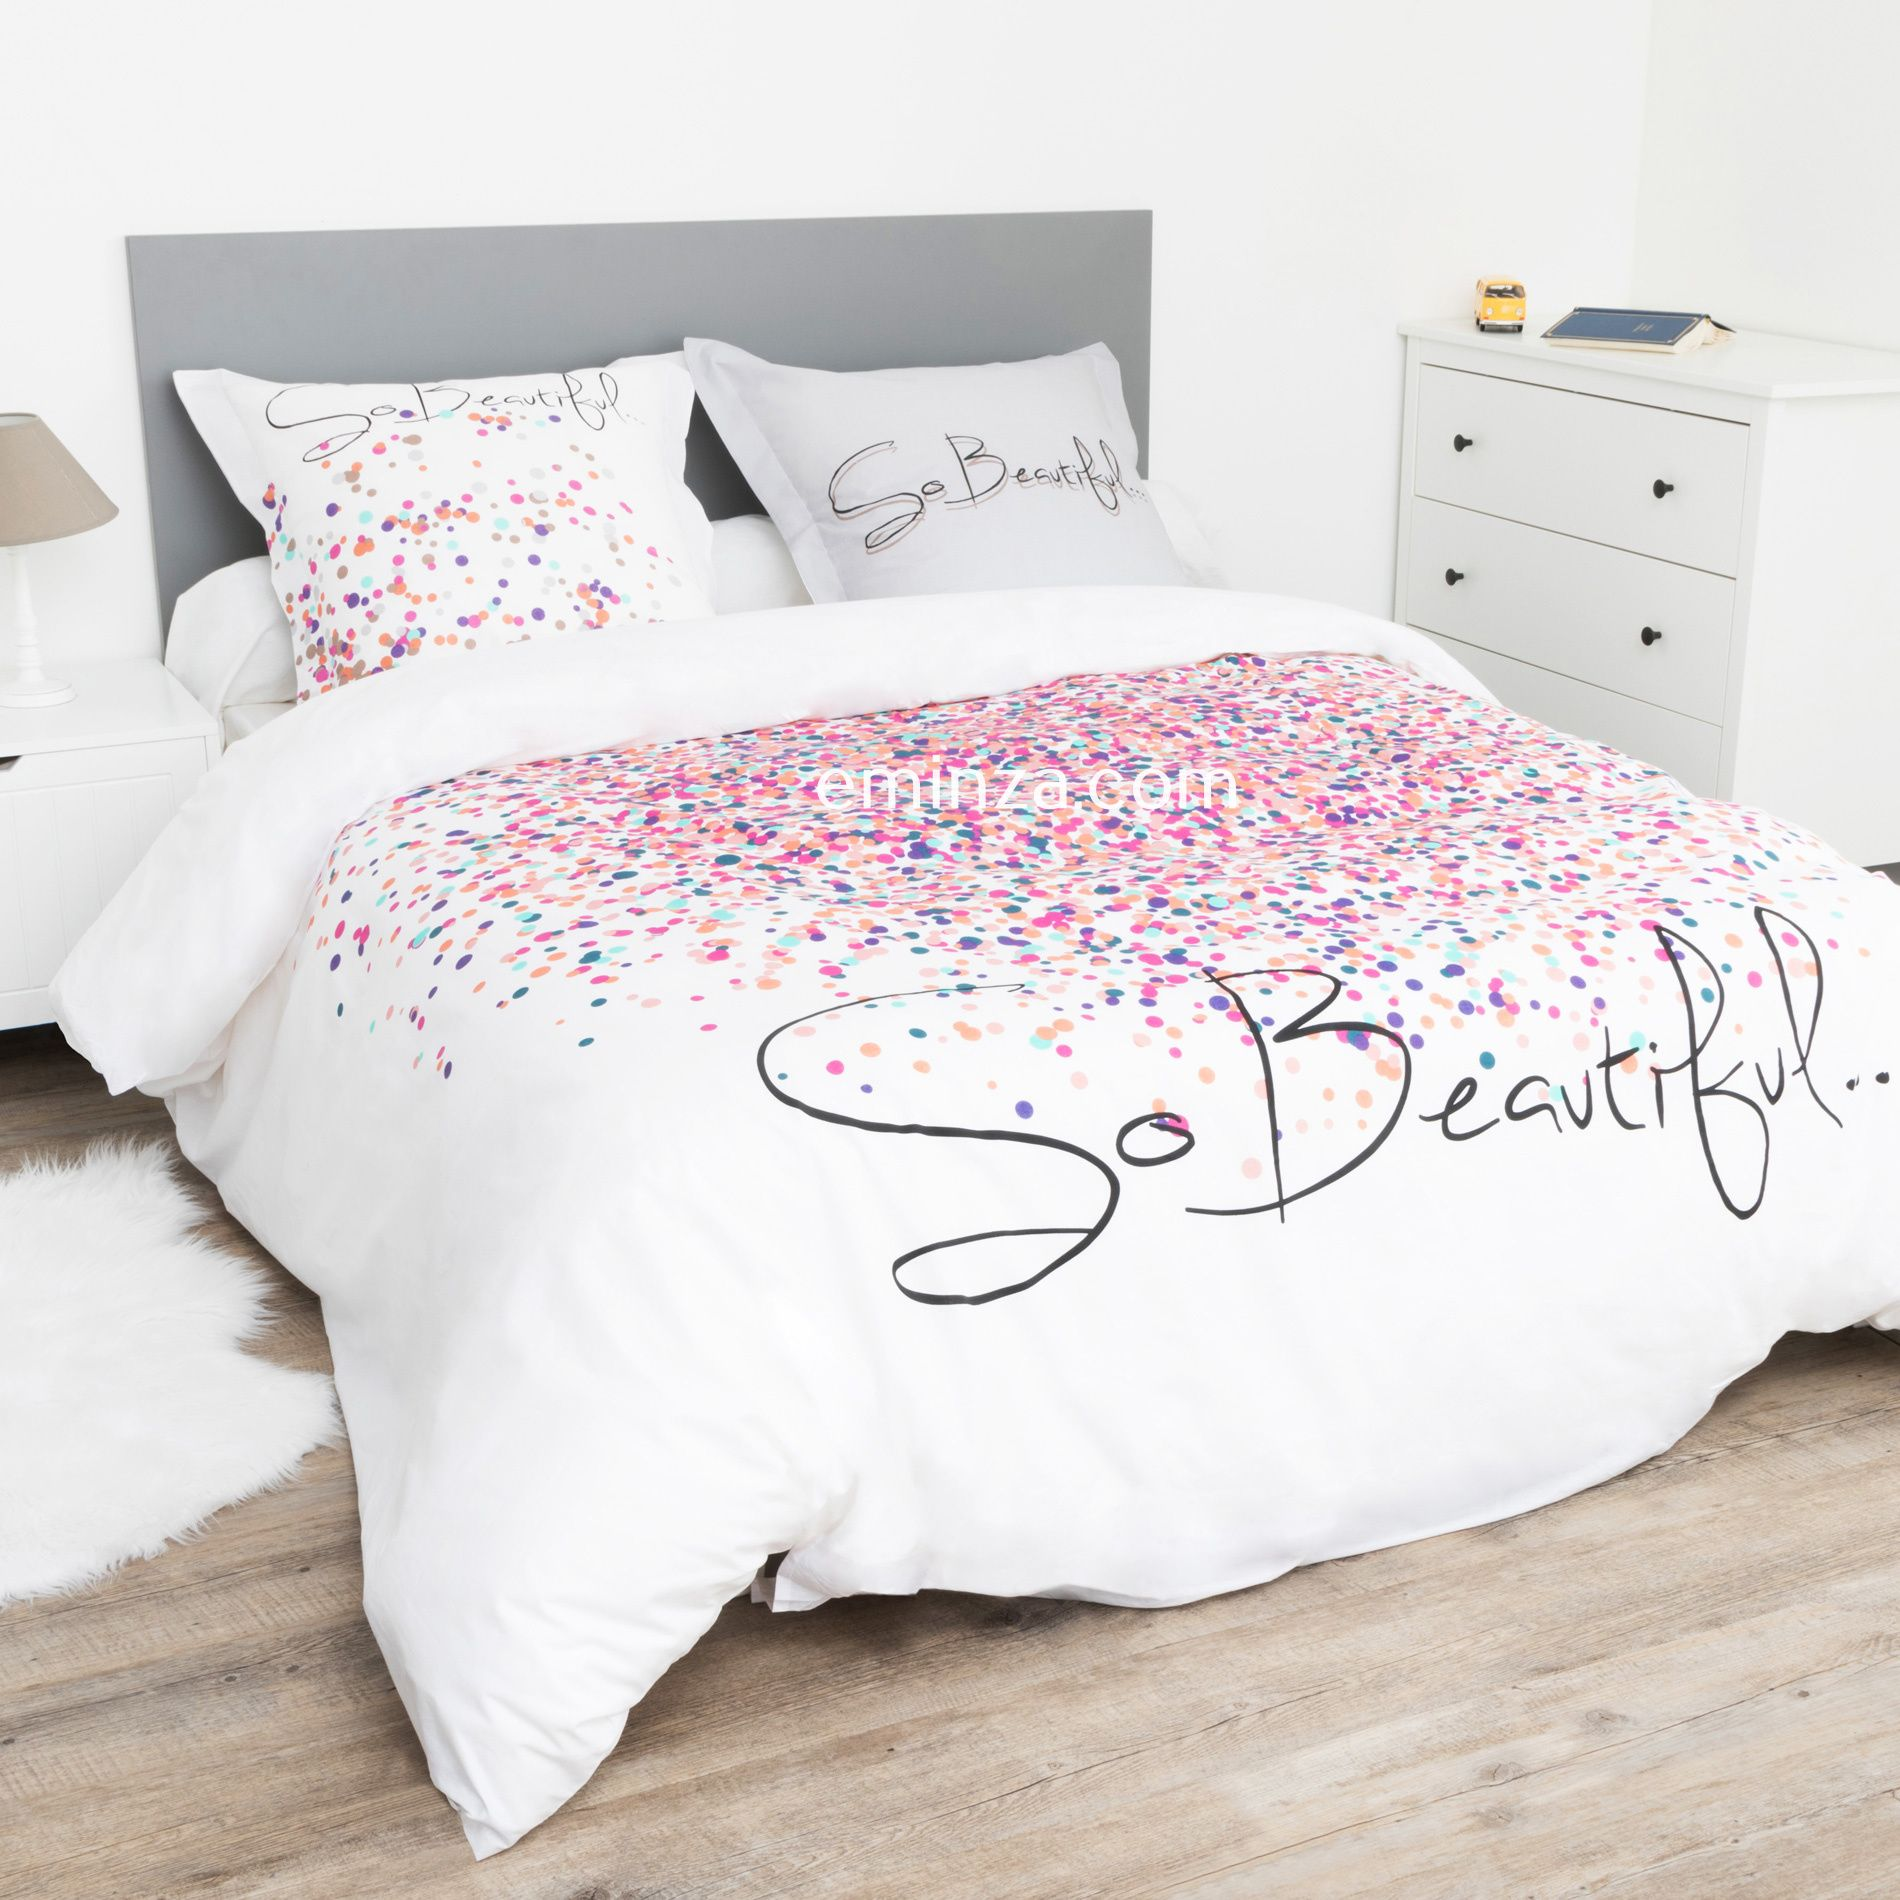 housse de couette et deux taies fireworks 100 coton 240. Black Bedroom Furniture Sets. Home Design Ideas